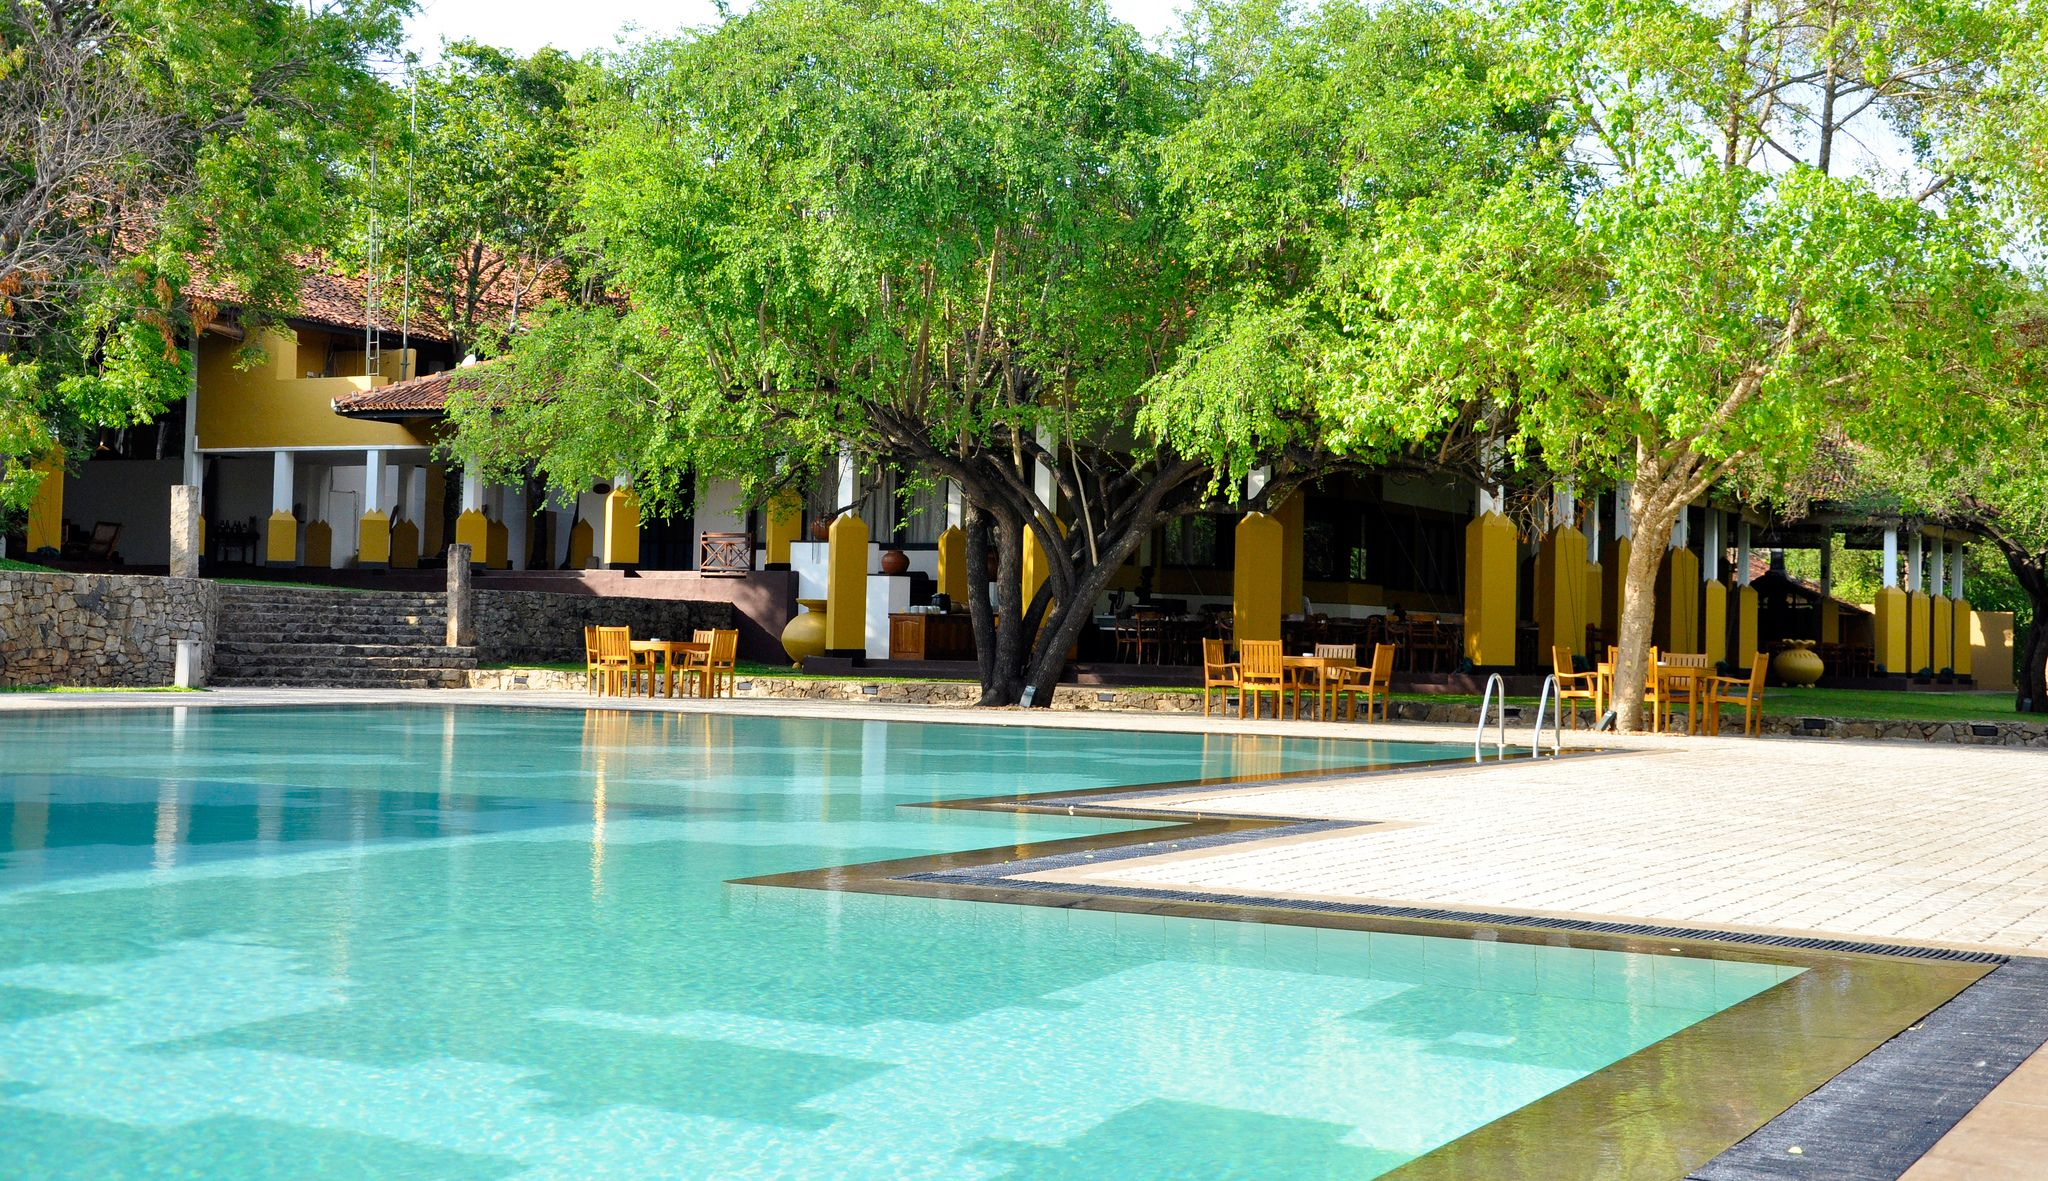 Pin By Dhanushka De Silva On Hotels In Sri Lanka Sri Lanka Outdoor Swimming Pool Swimming